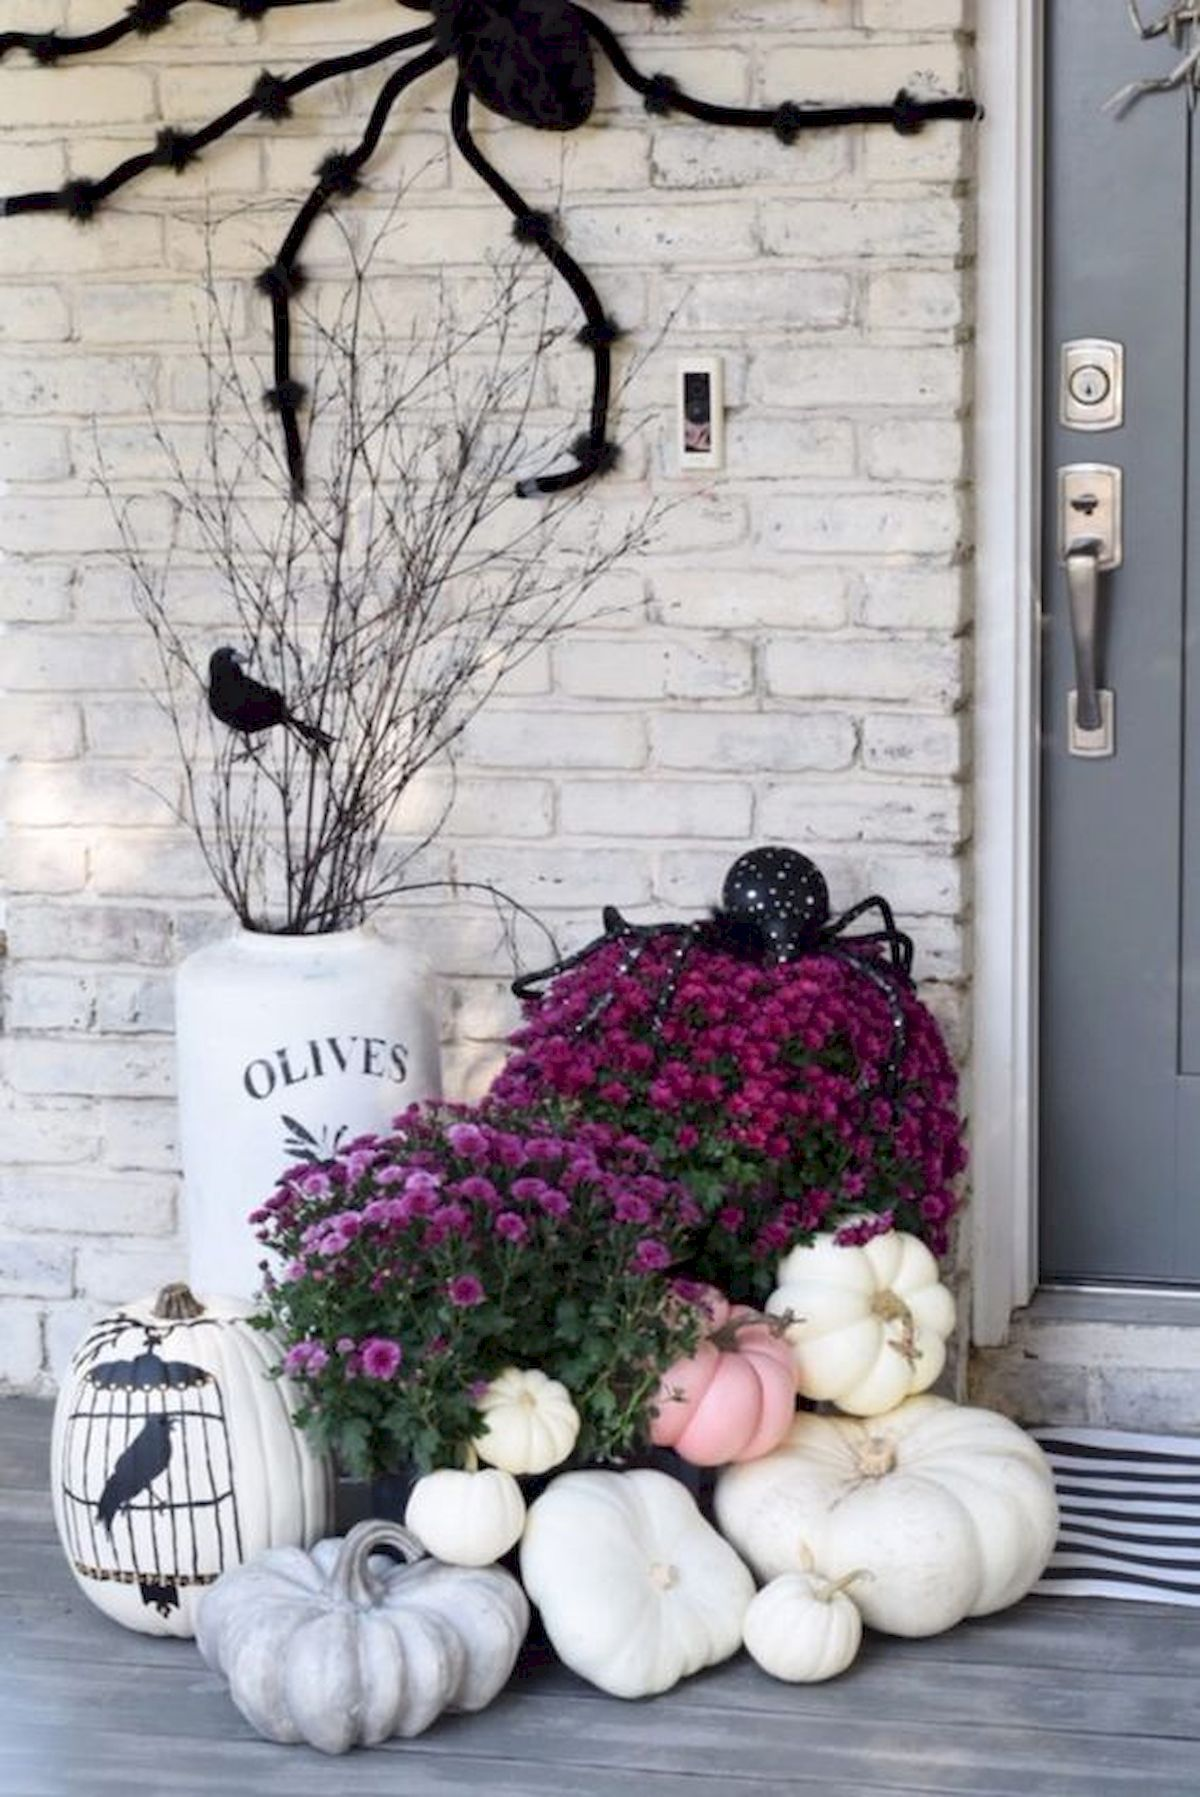 22 Chilling And Creative Halloween Porch Decorations | Diy Home